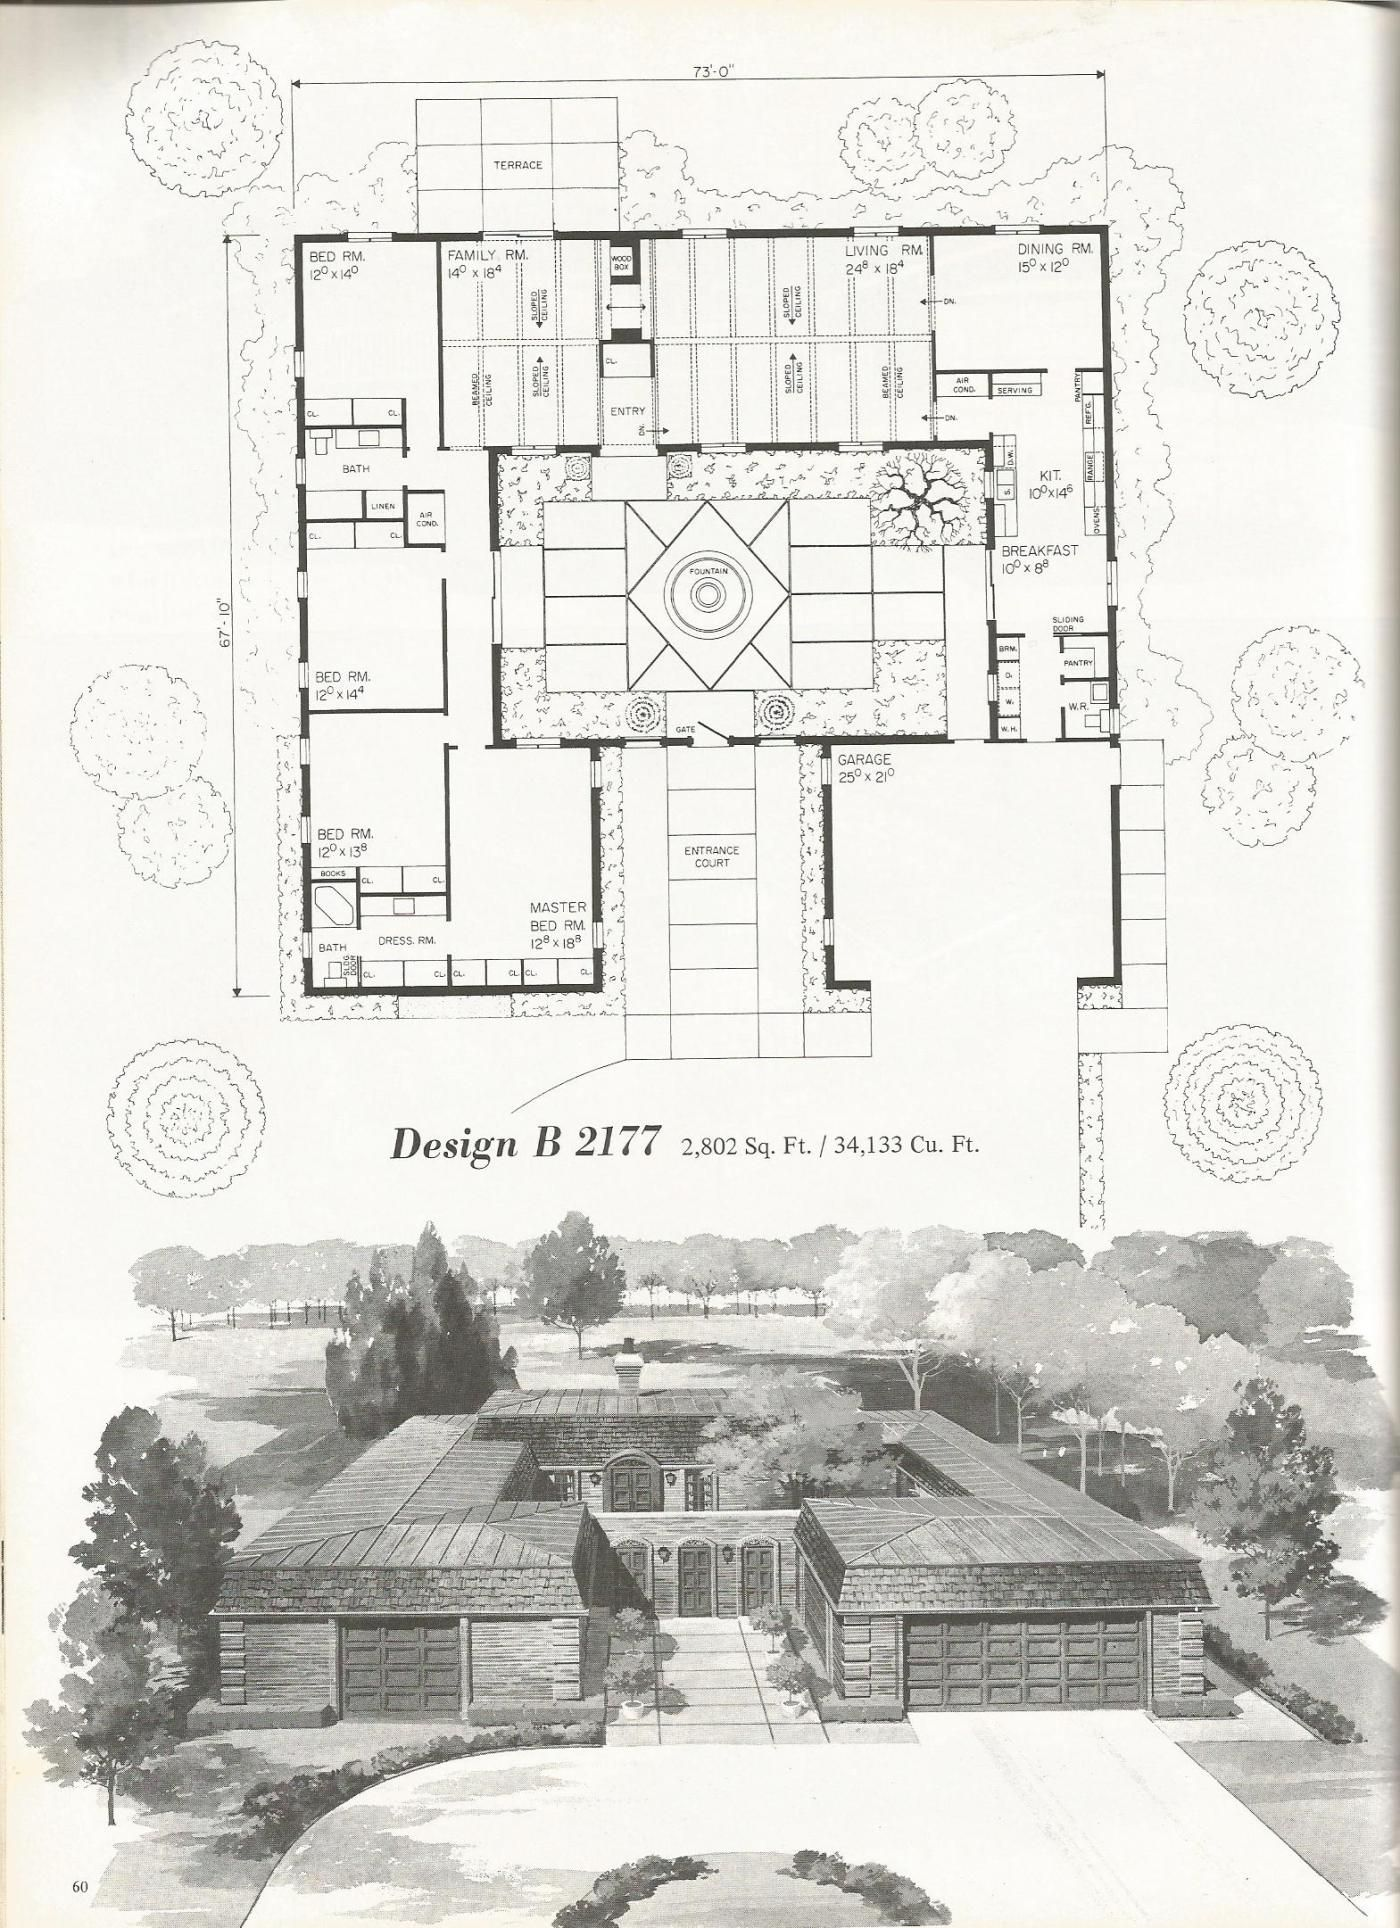 vintage house plans, mid century homes, luxurious vintage home